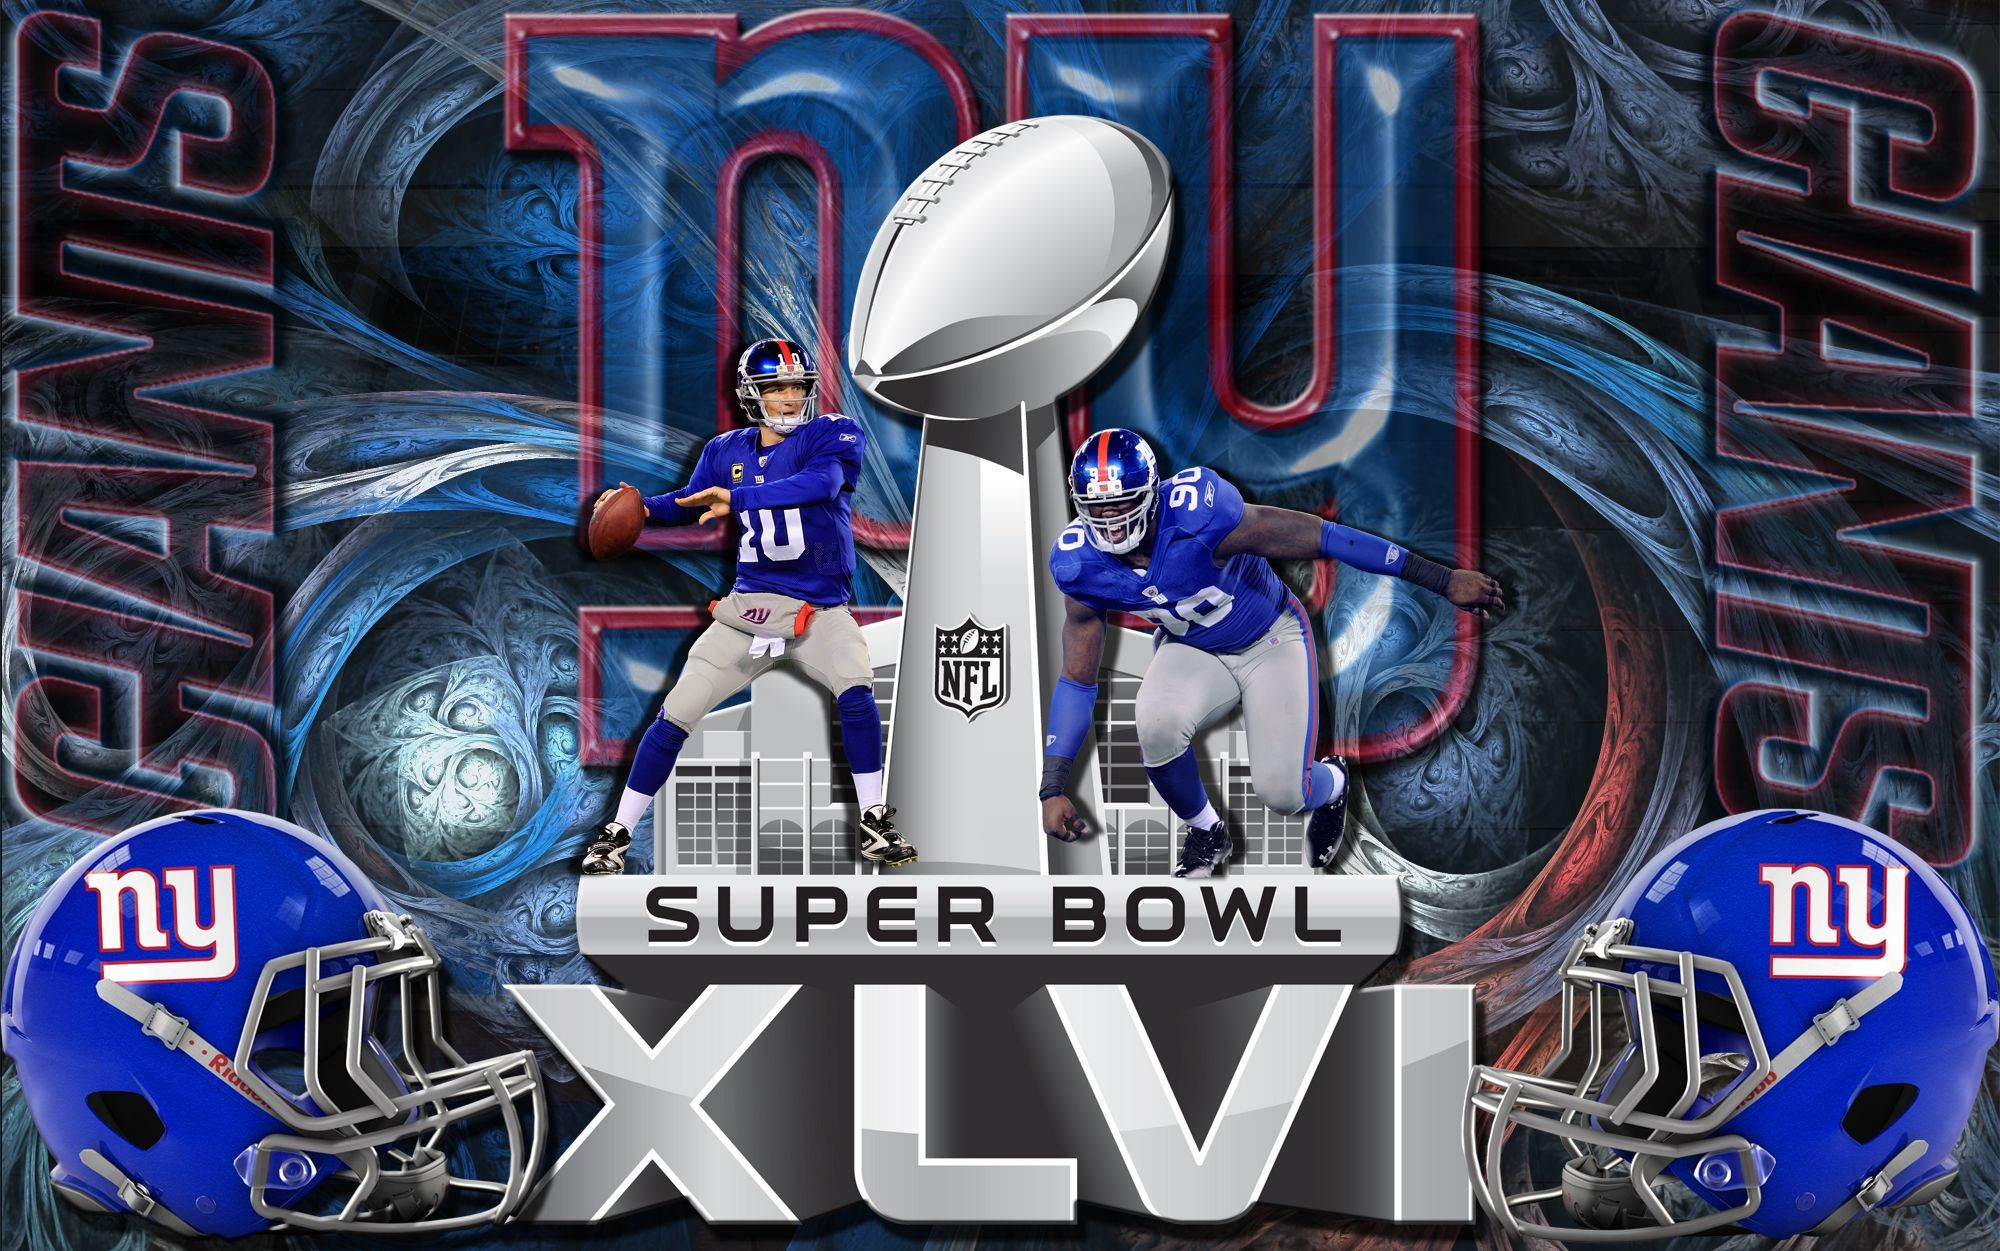 Awesome New York Giants wallpaper hd